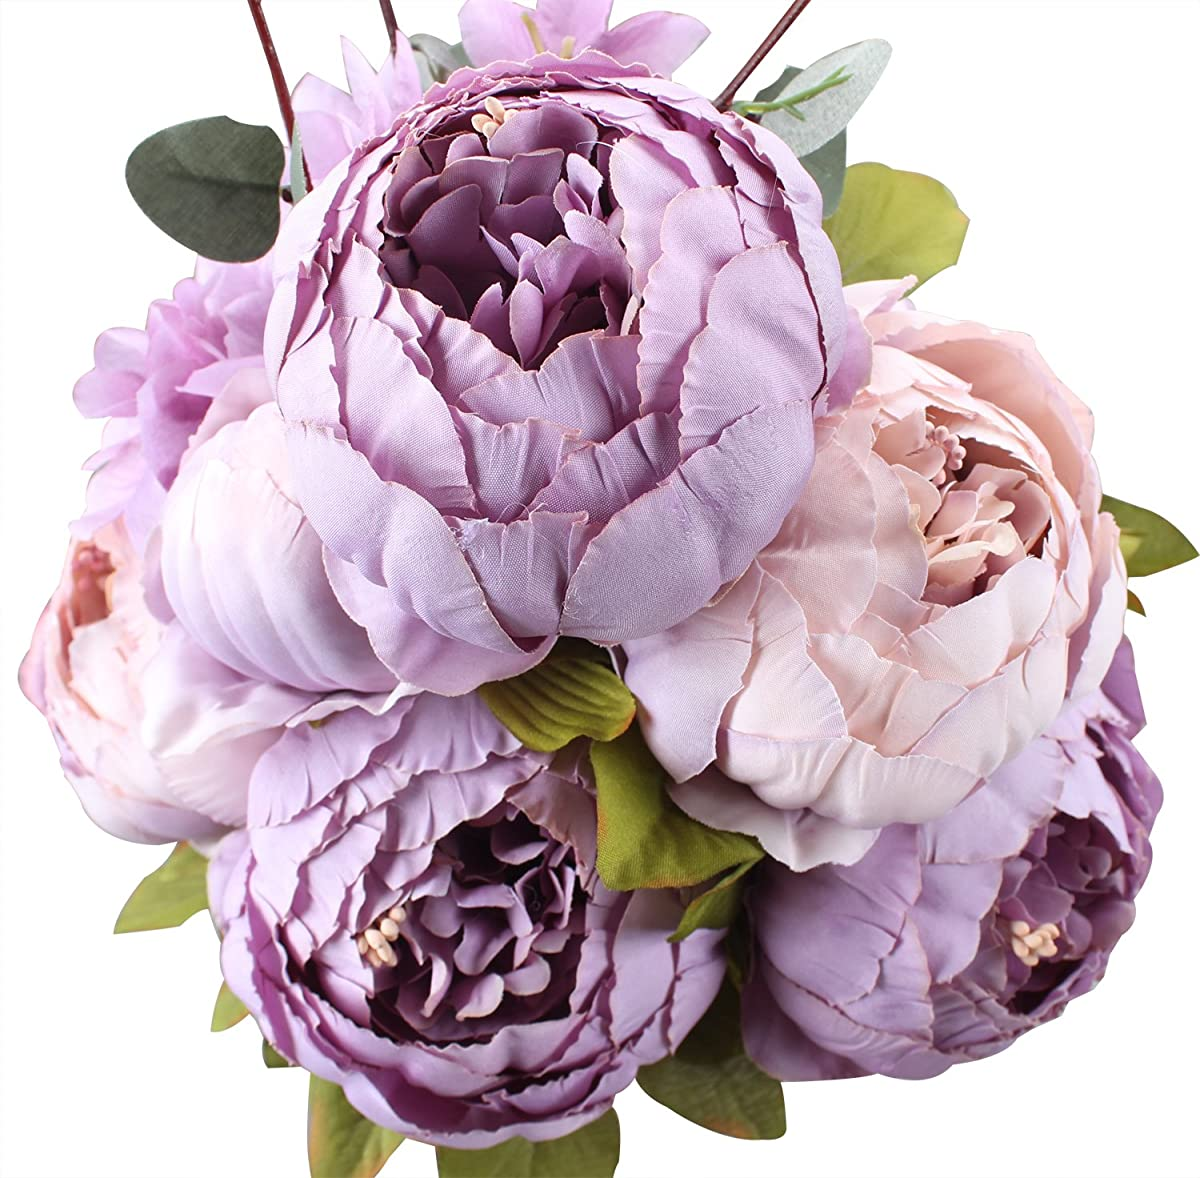 Duovlo Fake Flowers Vintage Artificial Peony Silk Flowers Wedding Home Decoration,Pack of 1 (New Purple)